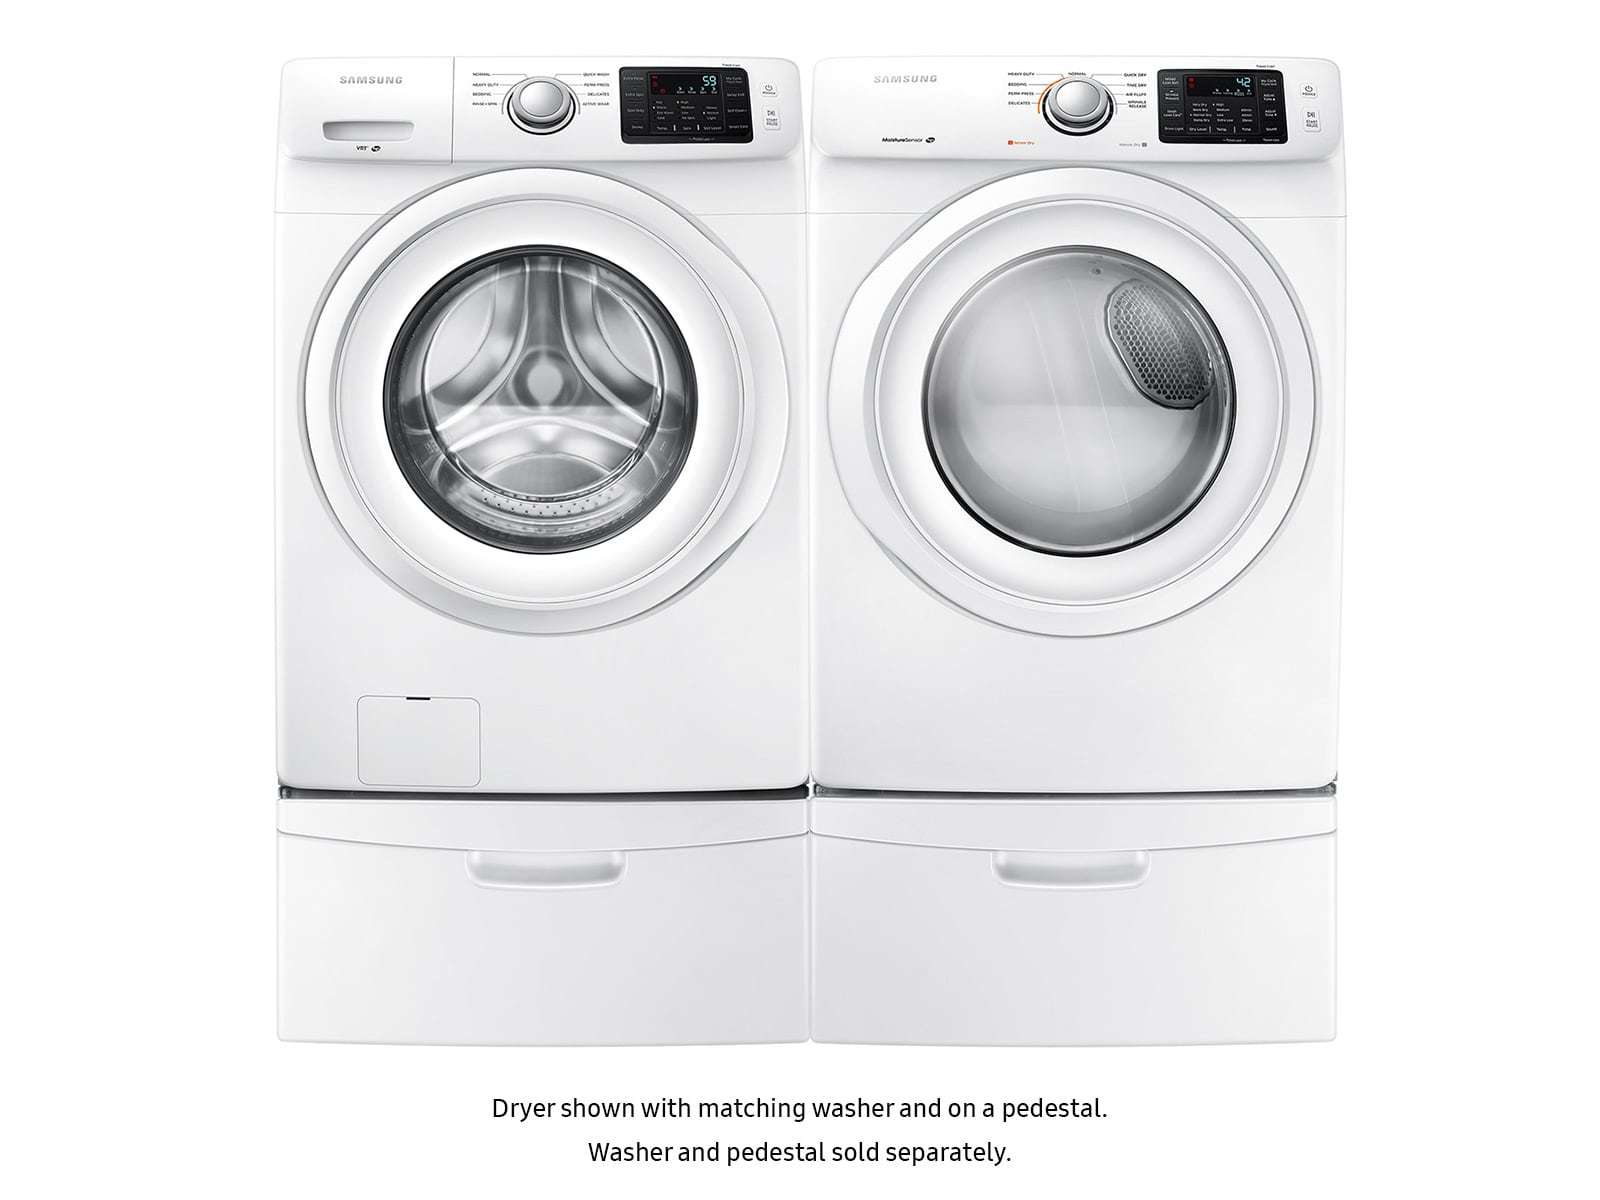 Samsung 7 5 Cu  Ft  Gas Dryer with Sensor Dry in White | Nebraska